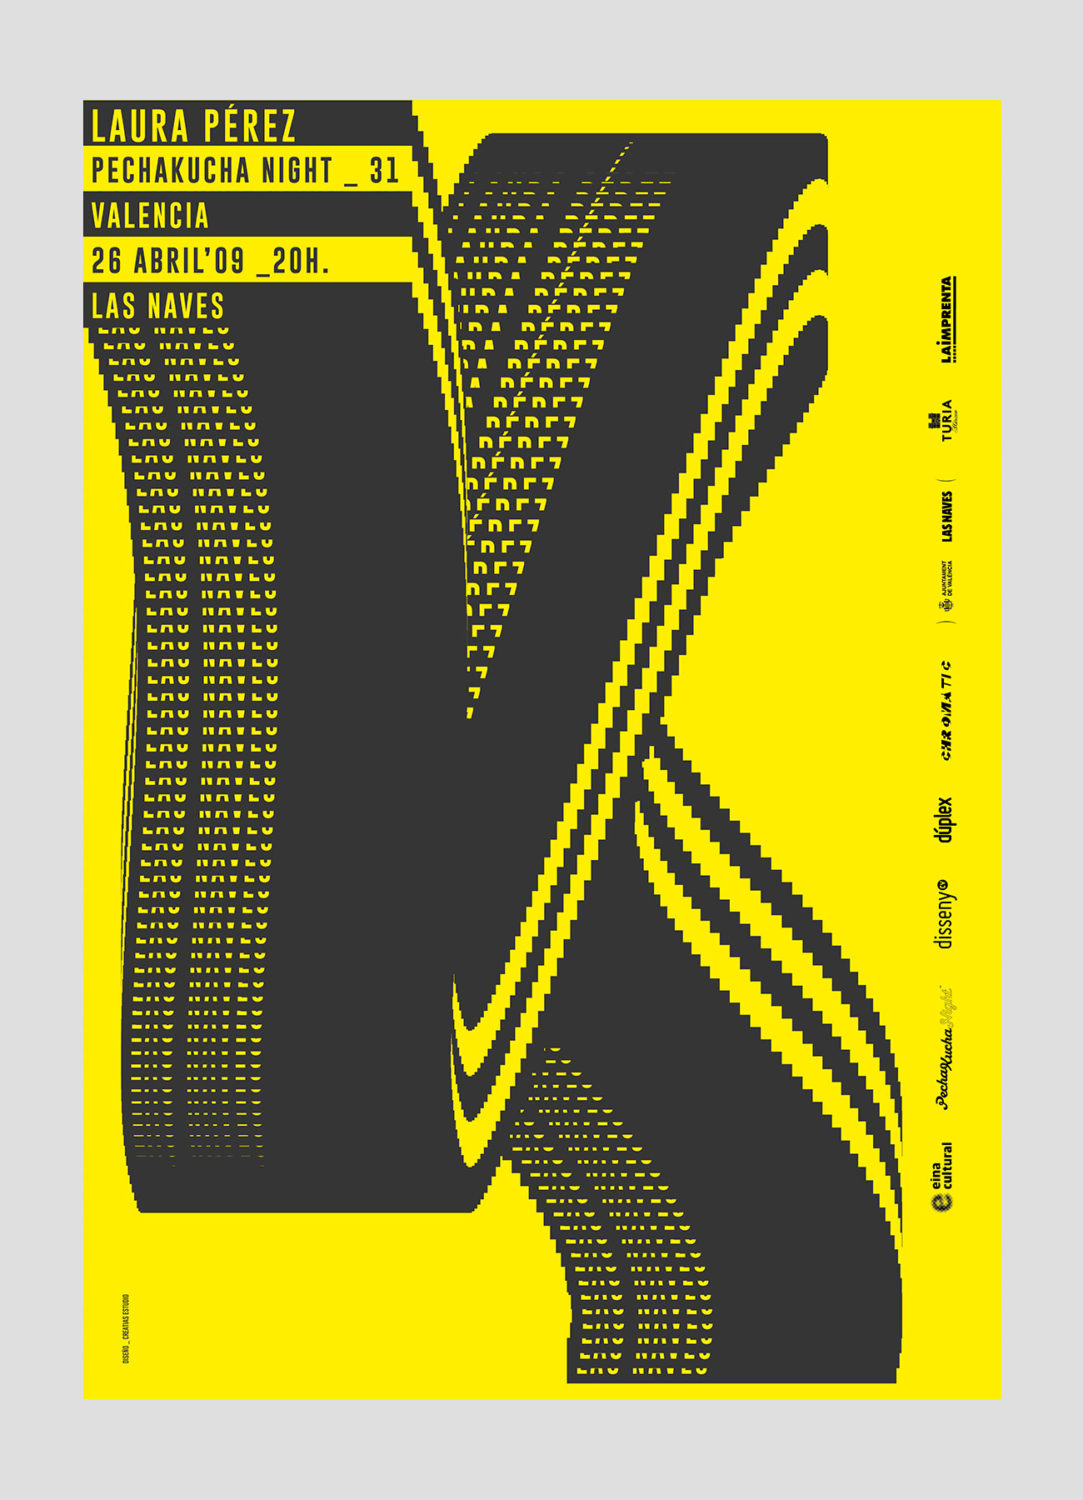 Cartel PechaKucha Night 31 Valencia, por Creatias Estudio